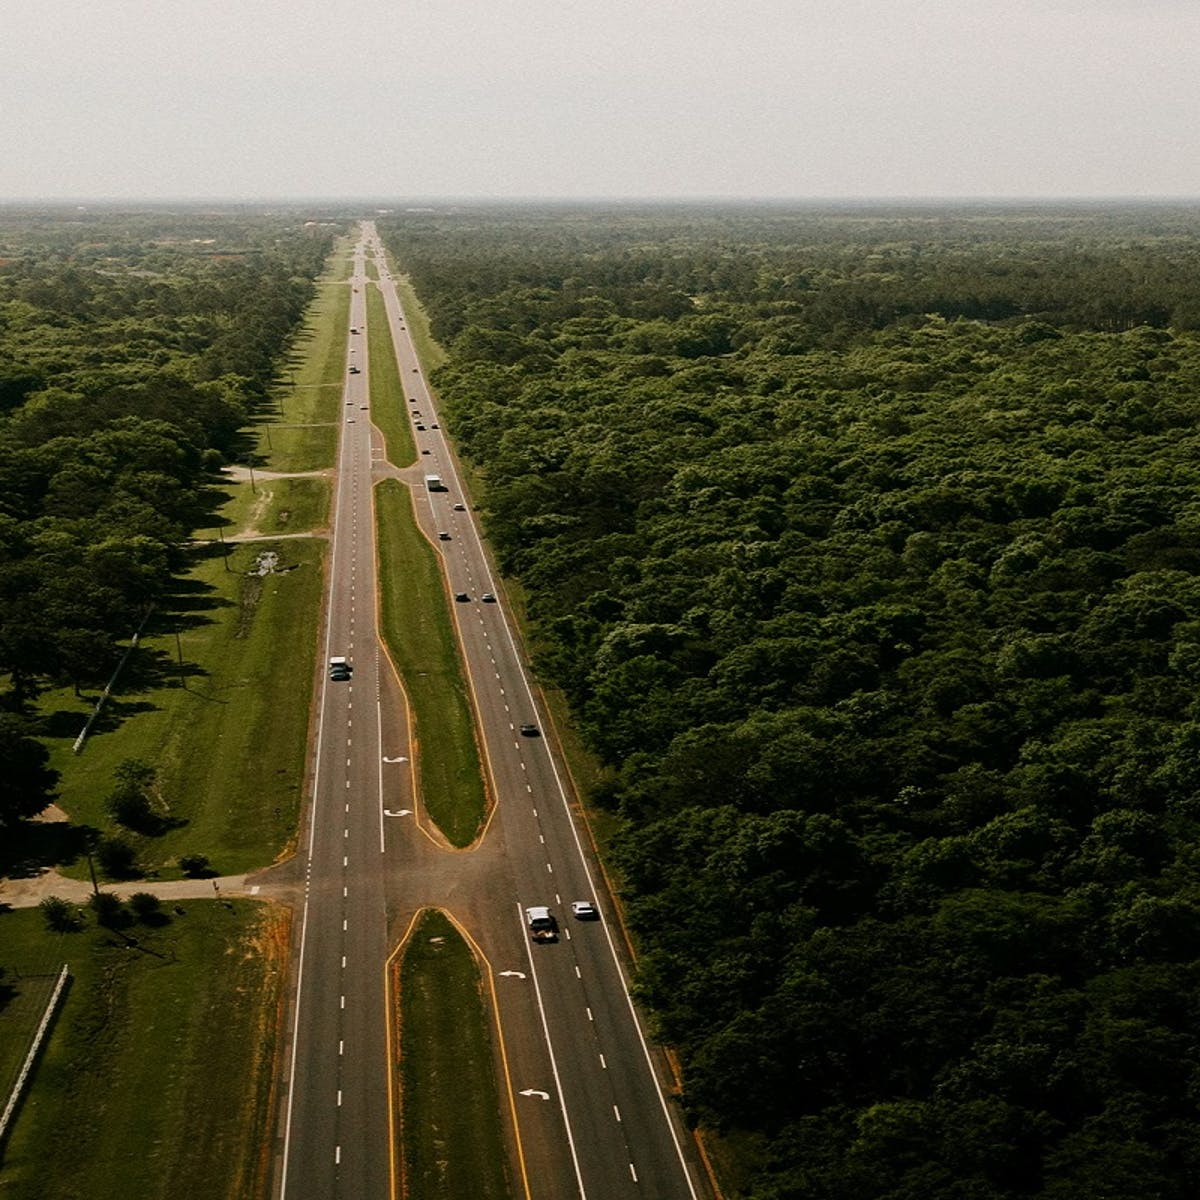 An interstate splits through a forest. The omission of wildlife corridors on an interstate like this means no safe crossing for animals.